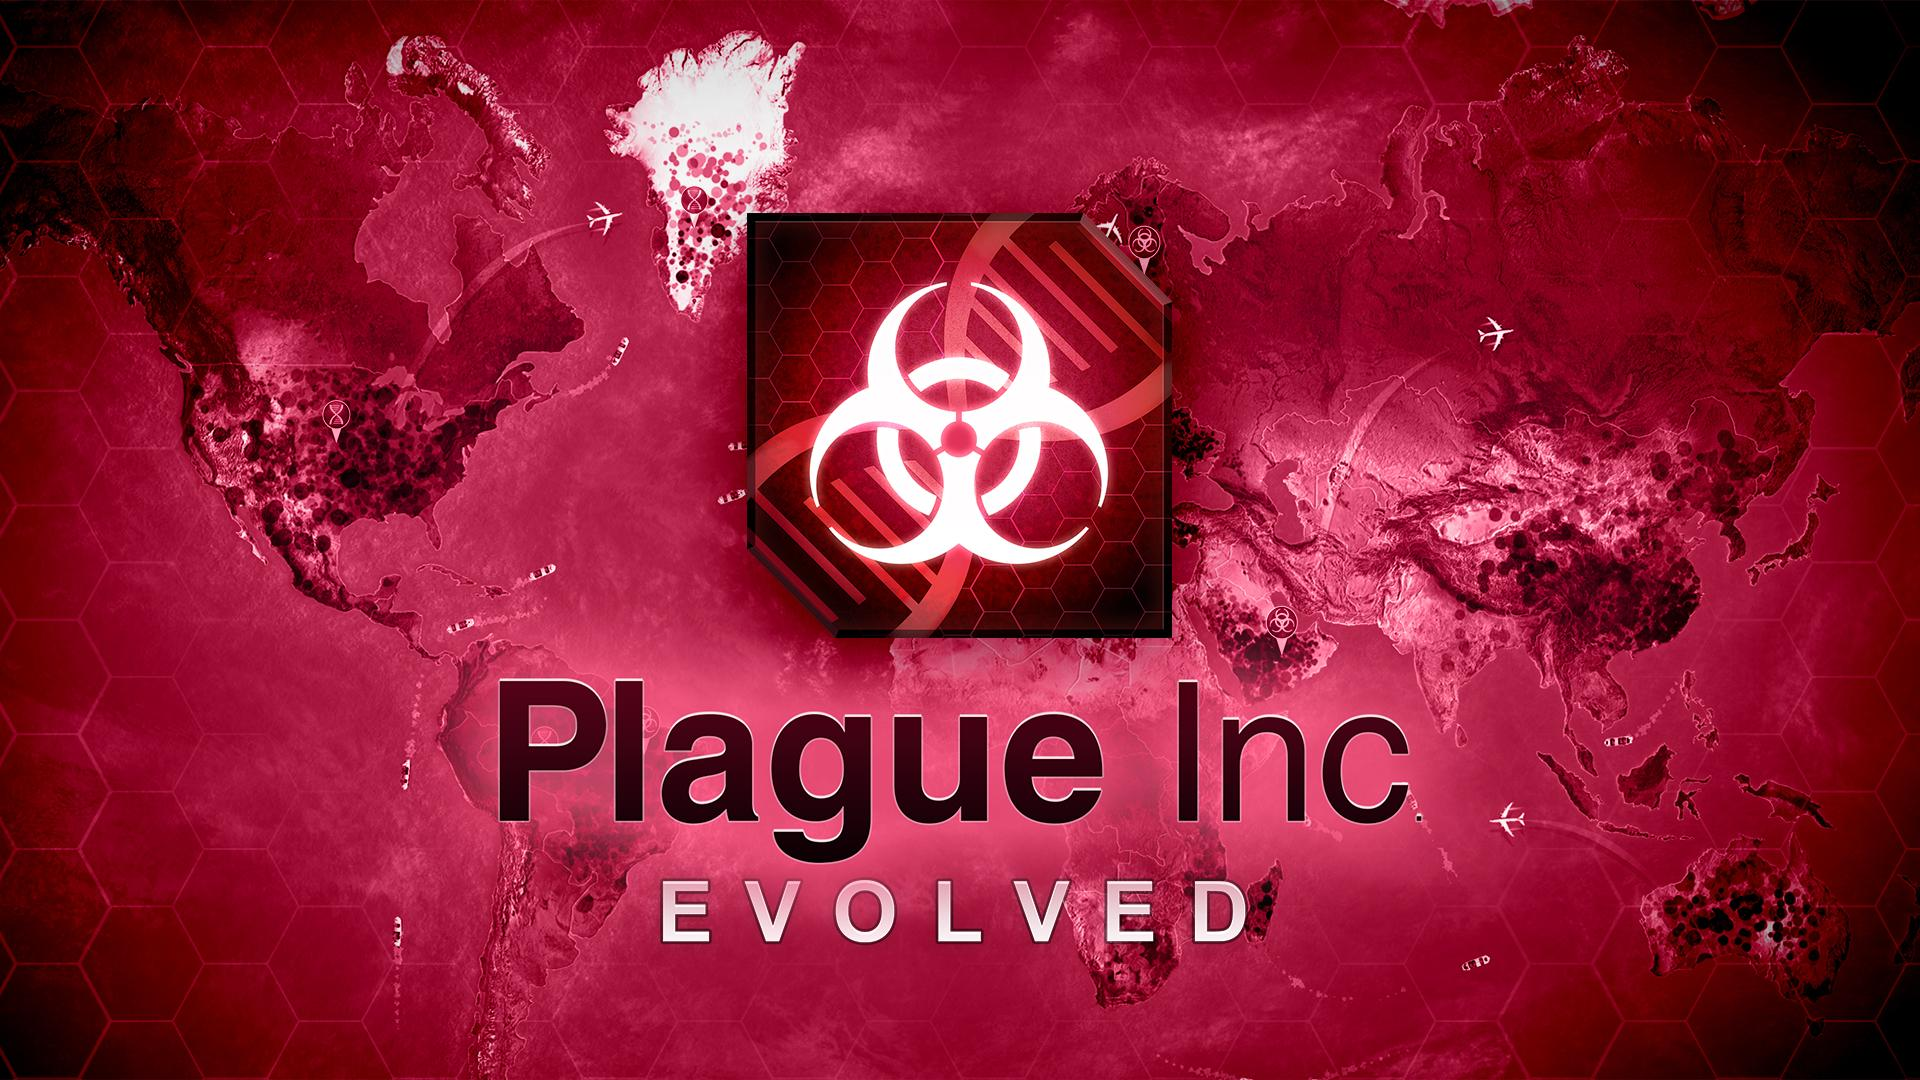 Plague Inc: Evolved free Download PC Game (Full Version)